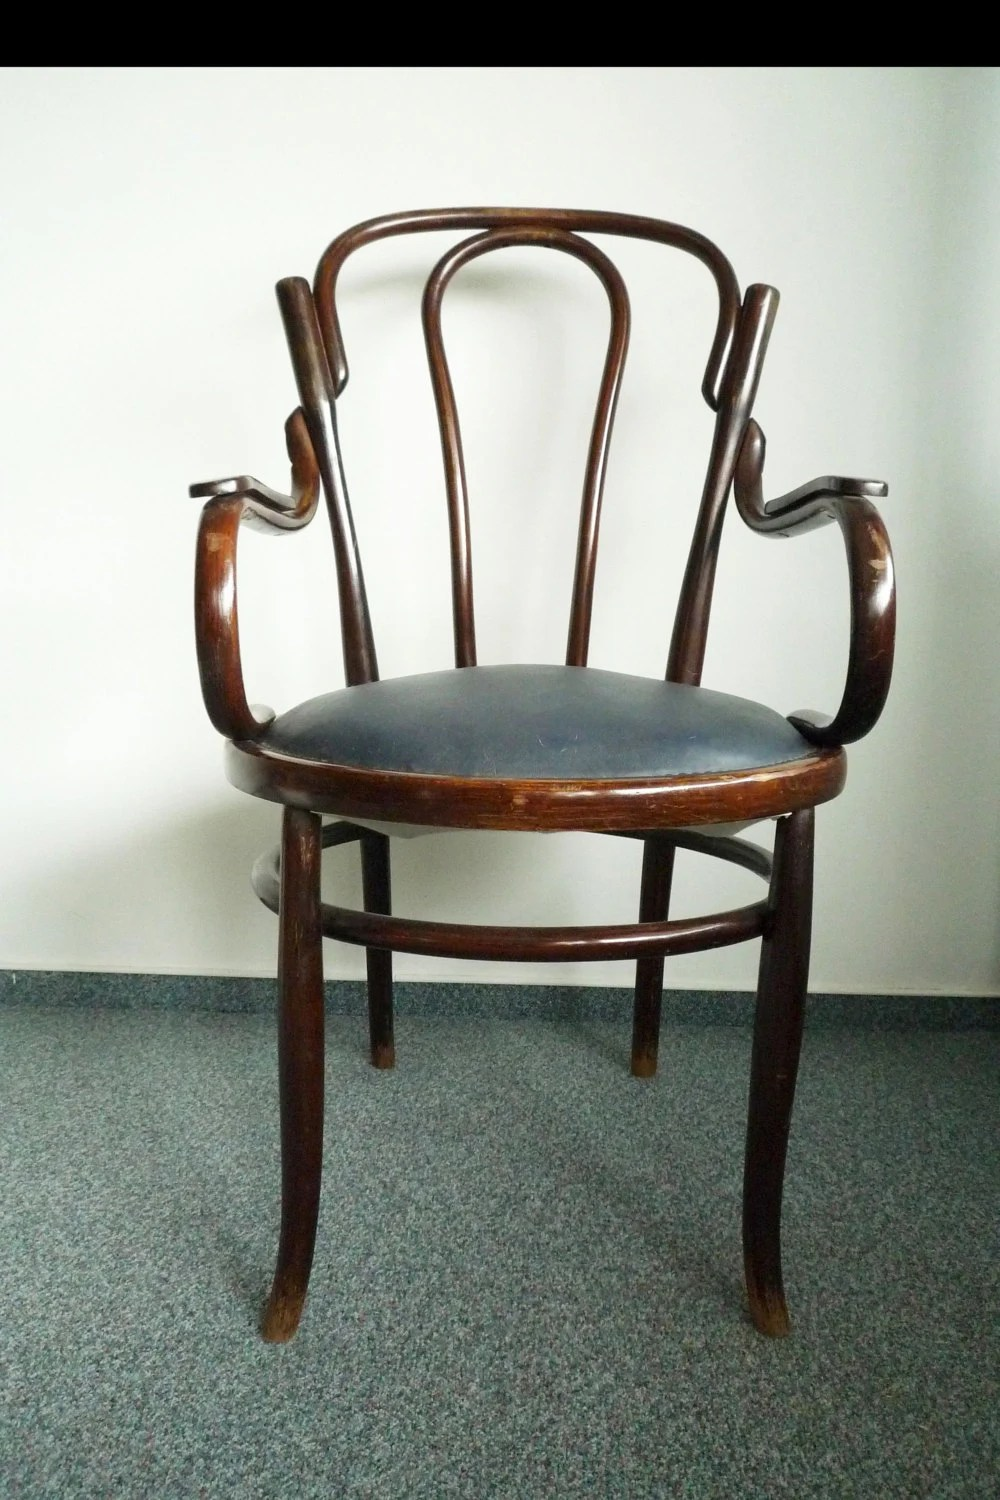 antique art nouveau bentwood thonet chair armchair easy chair early 1900 upholstered haute juice. Black Bedroom Furniture Sets. Home Design Ideas